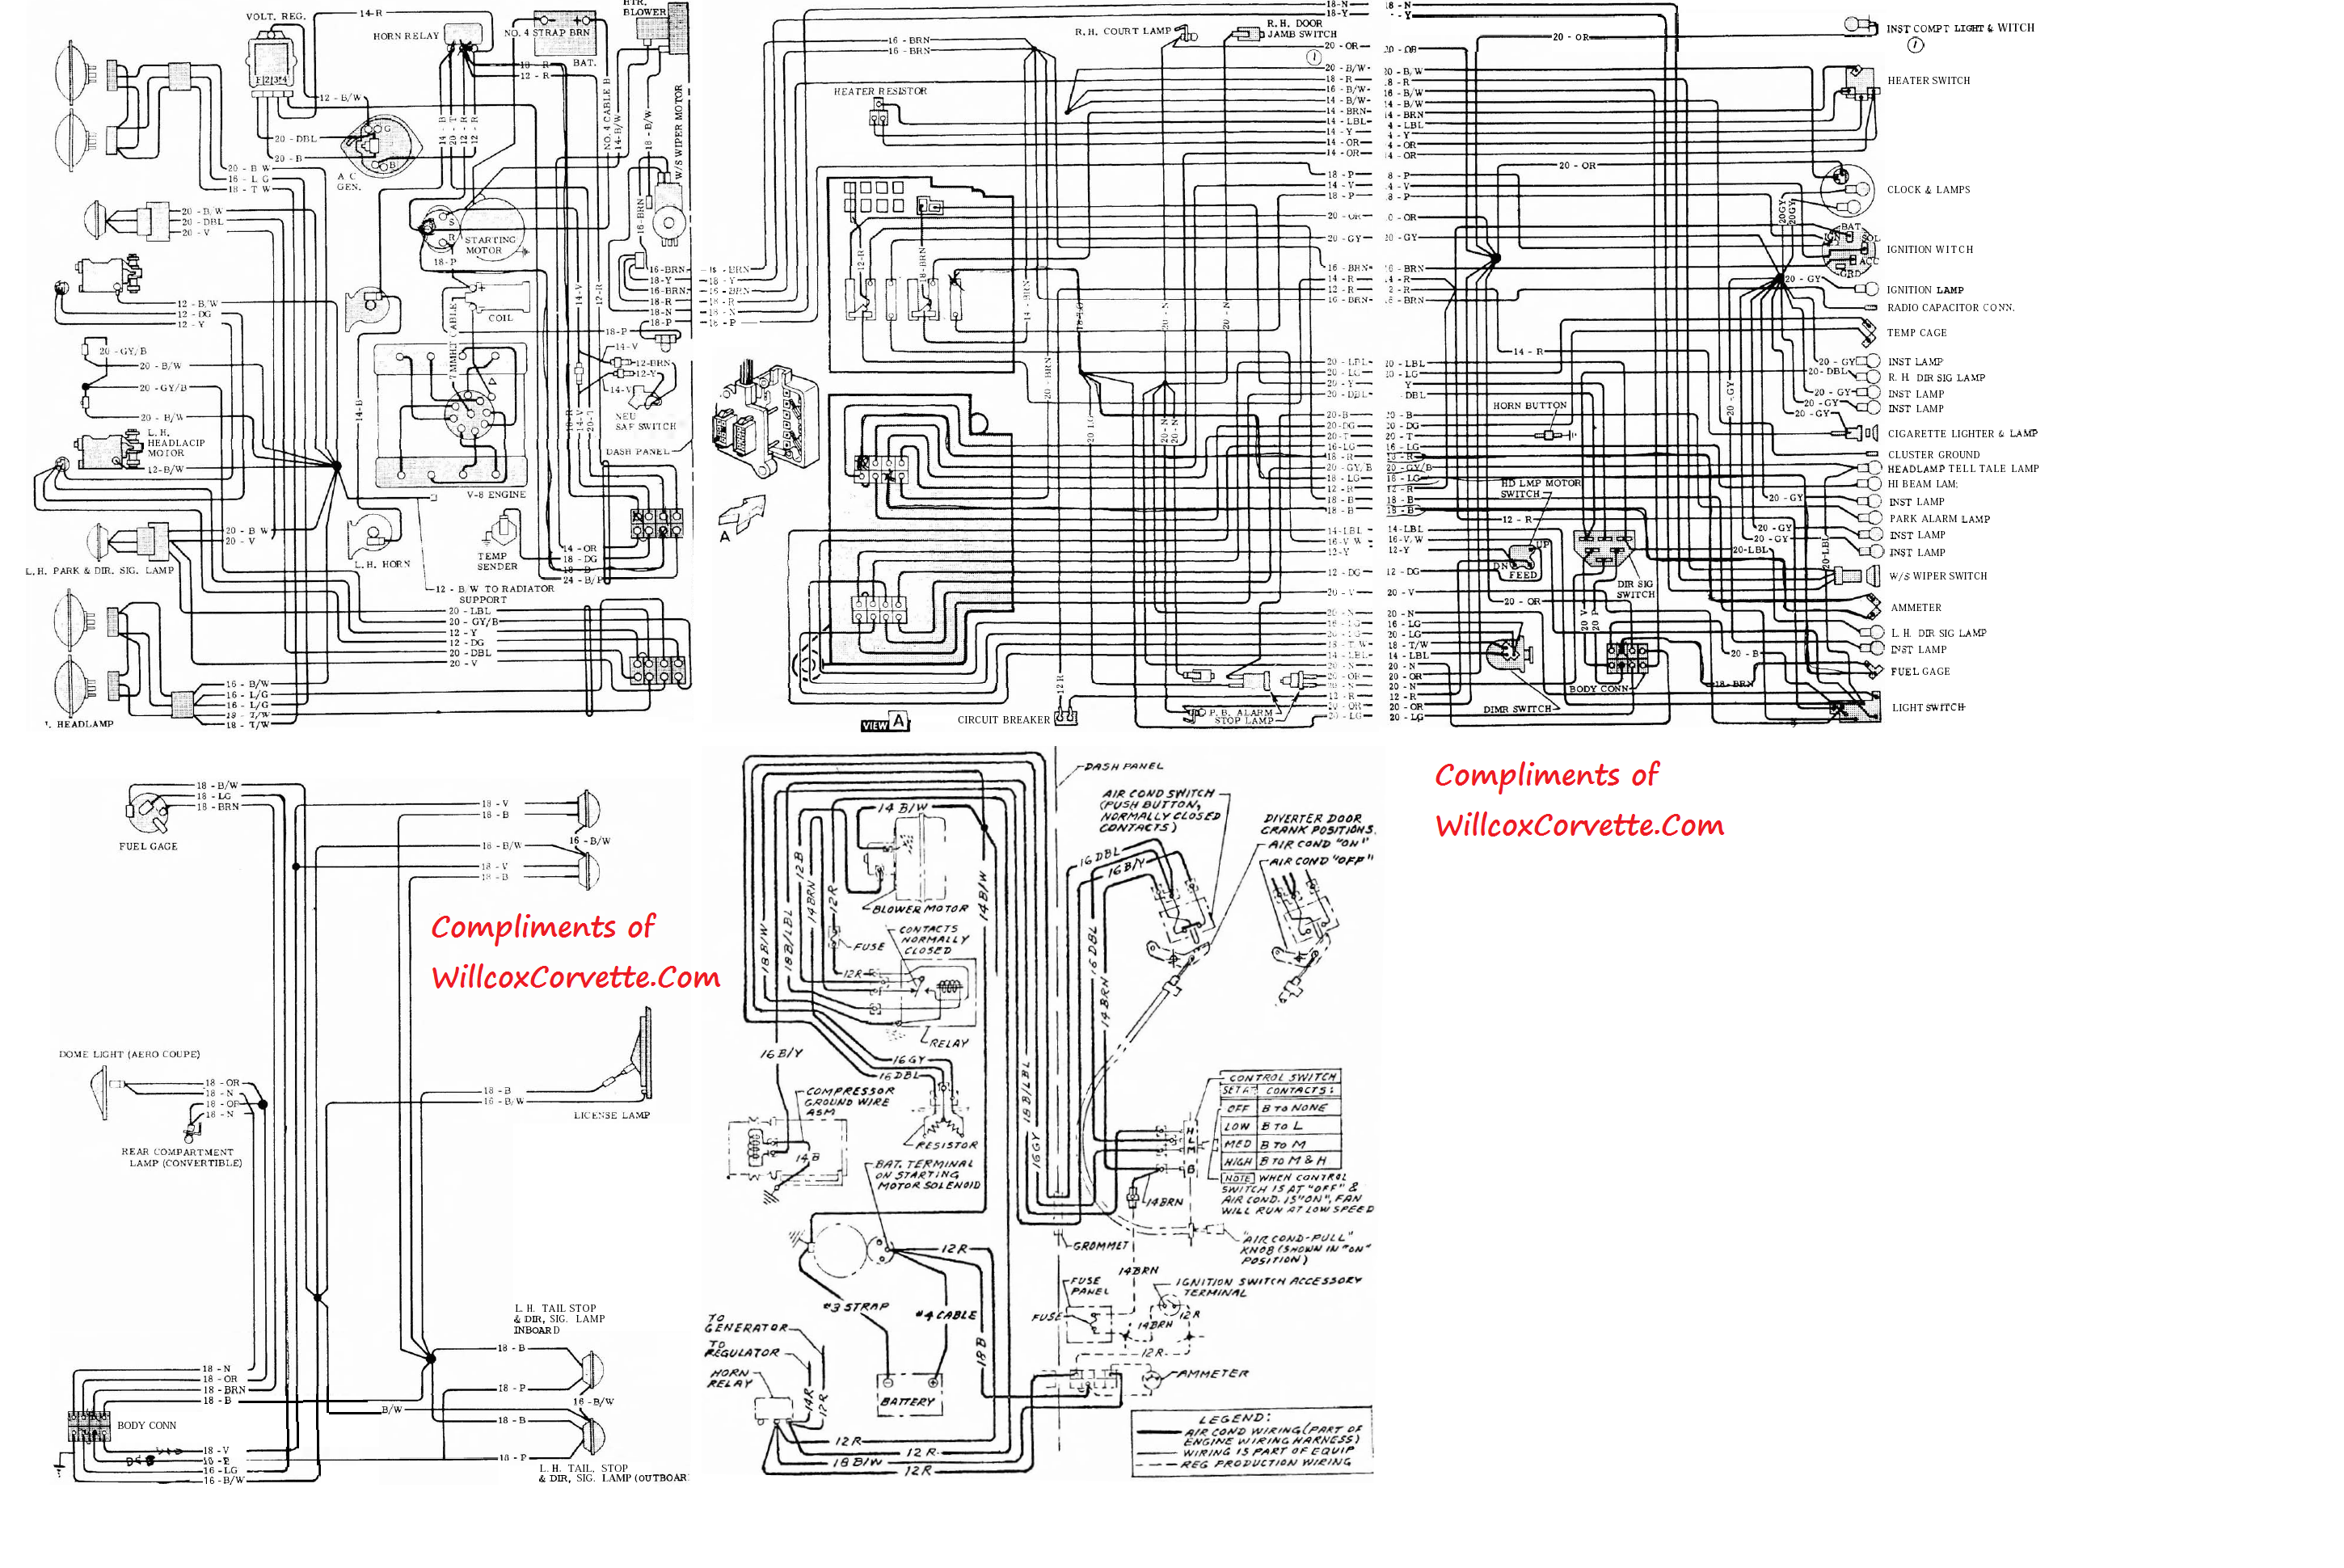 Chevrolet Venture Van Starting System Wiring Diagram moreover 1994 Ford Ranger Engine Diagrams in addition Dodge Ram Van Engine  partment likewise Watch together with 97 Blazer Engine Diagram. on 2015 chevrolet camaro tail light